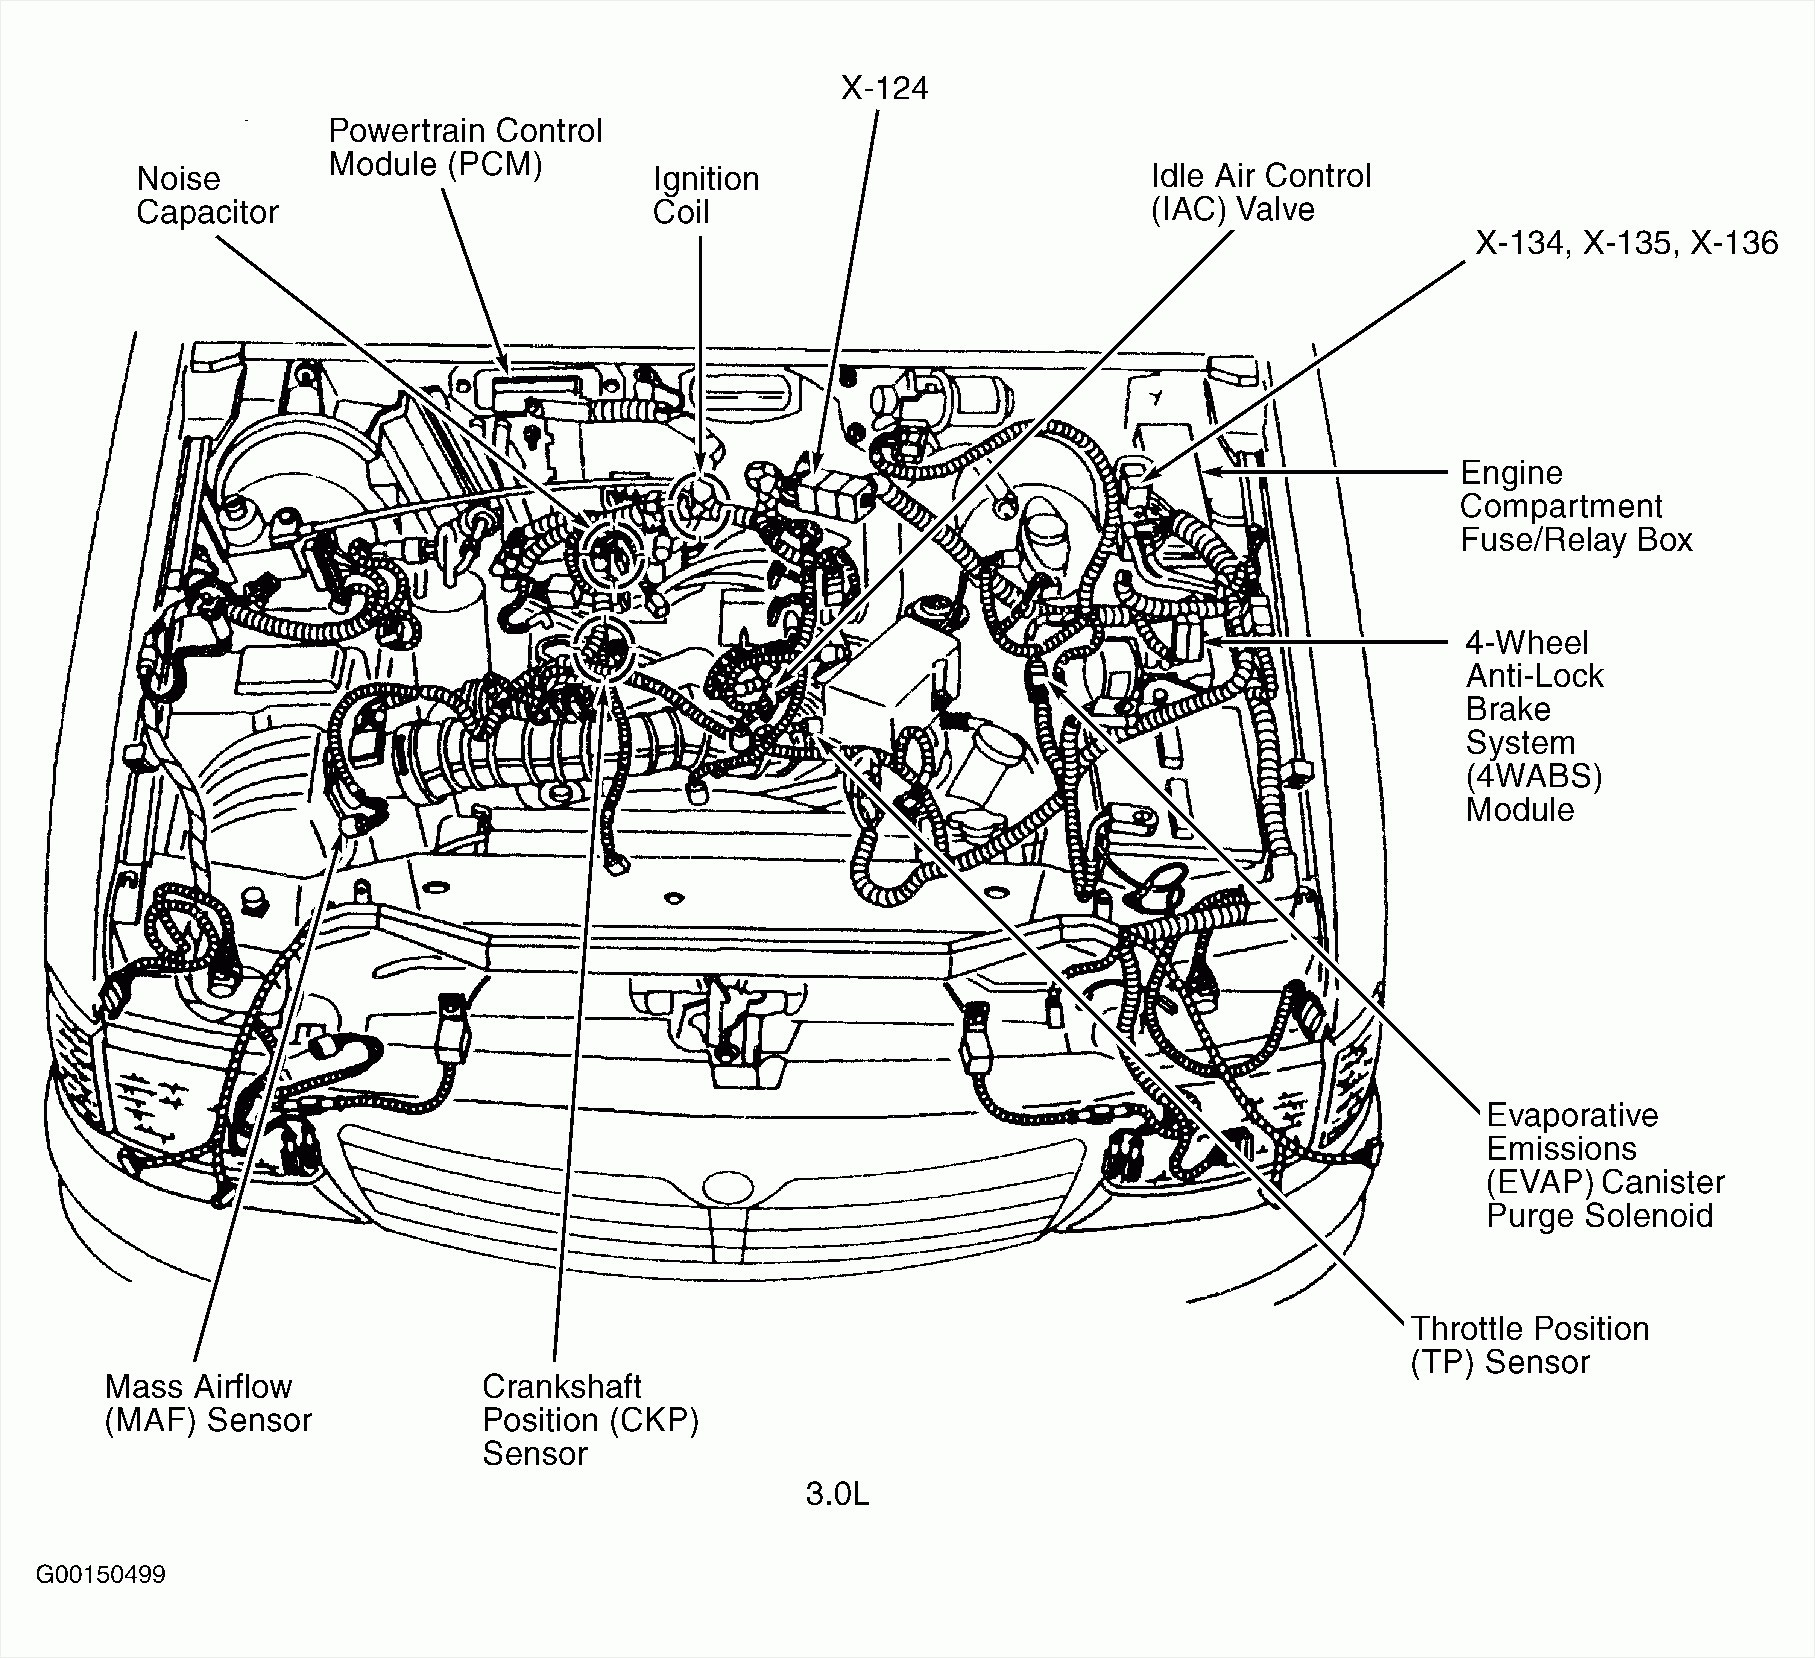 2000 dodge caravan belt diagram omron my4n 24vdc relay wiring 2004 engine schematics auto electrical 3 1 liter v6